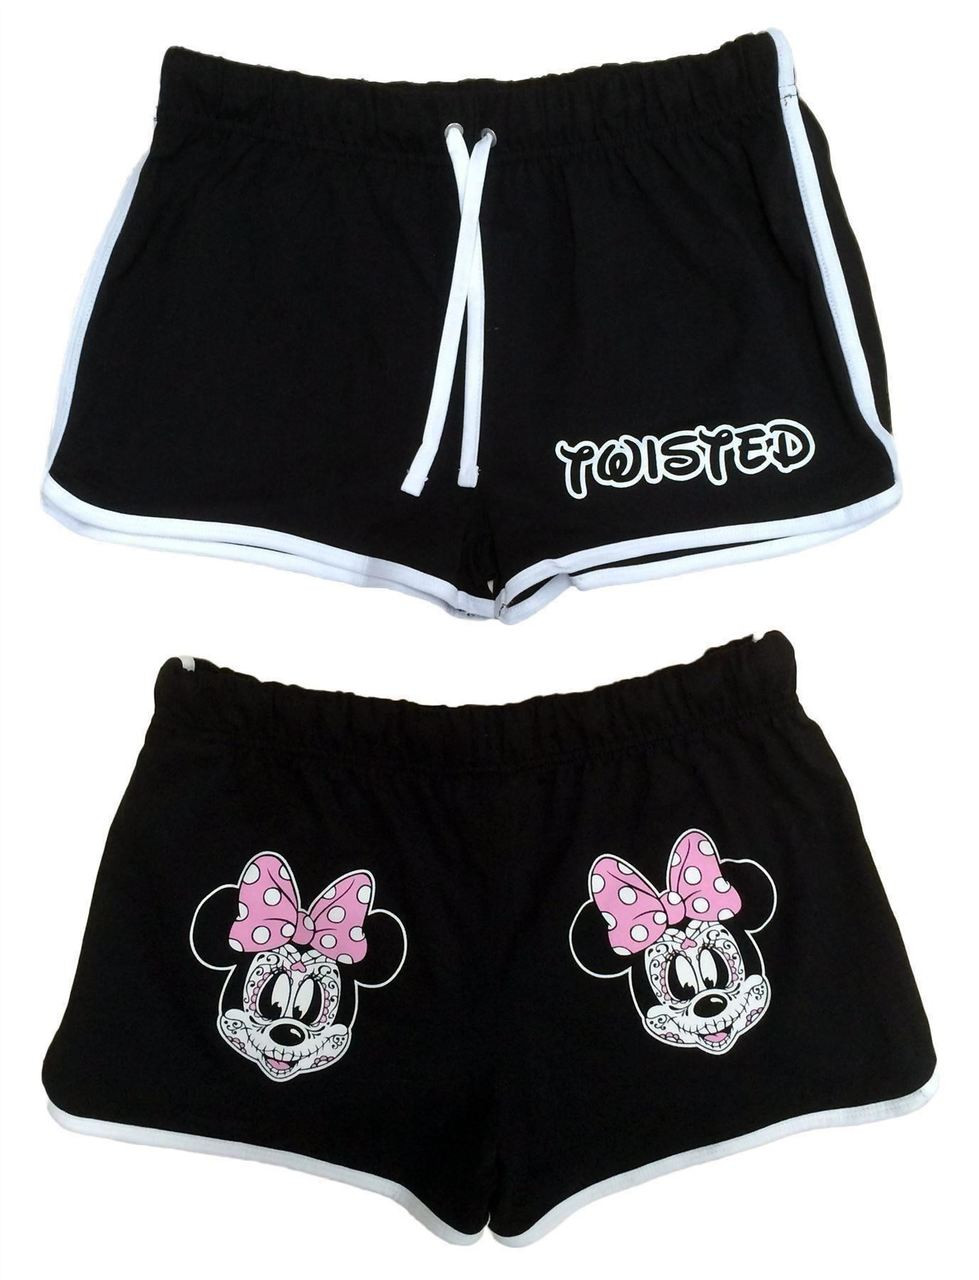 Twisted Minnie Day Of The Dead High Waisted Retro Shorts